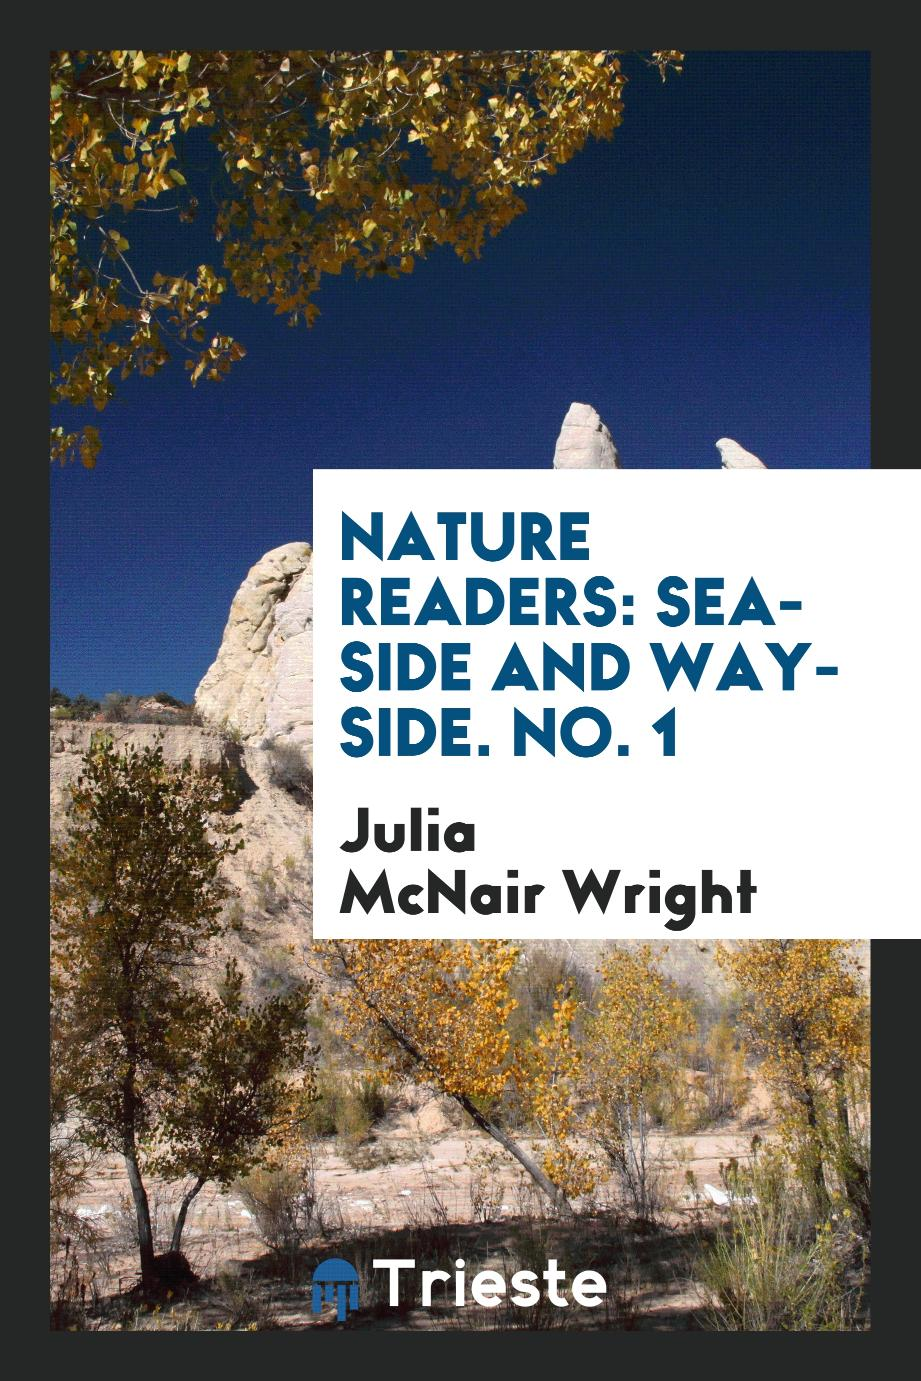 Nature Readers: Sea-Side and Way-Side. No. 1